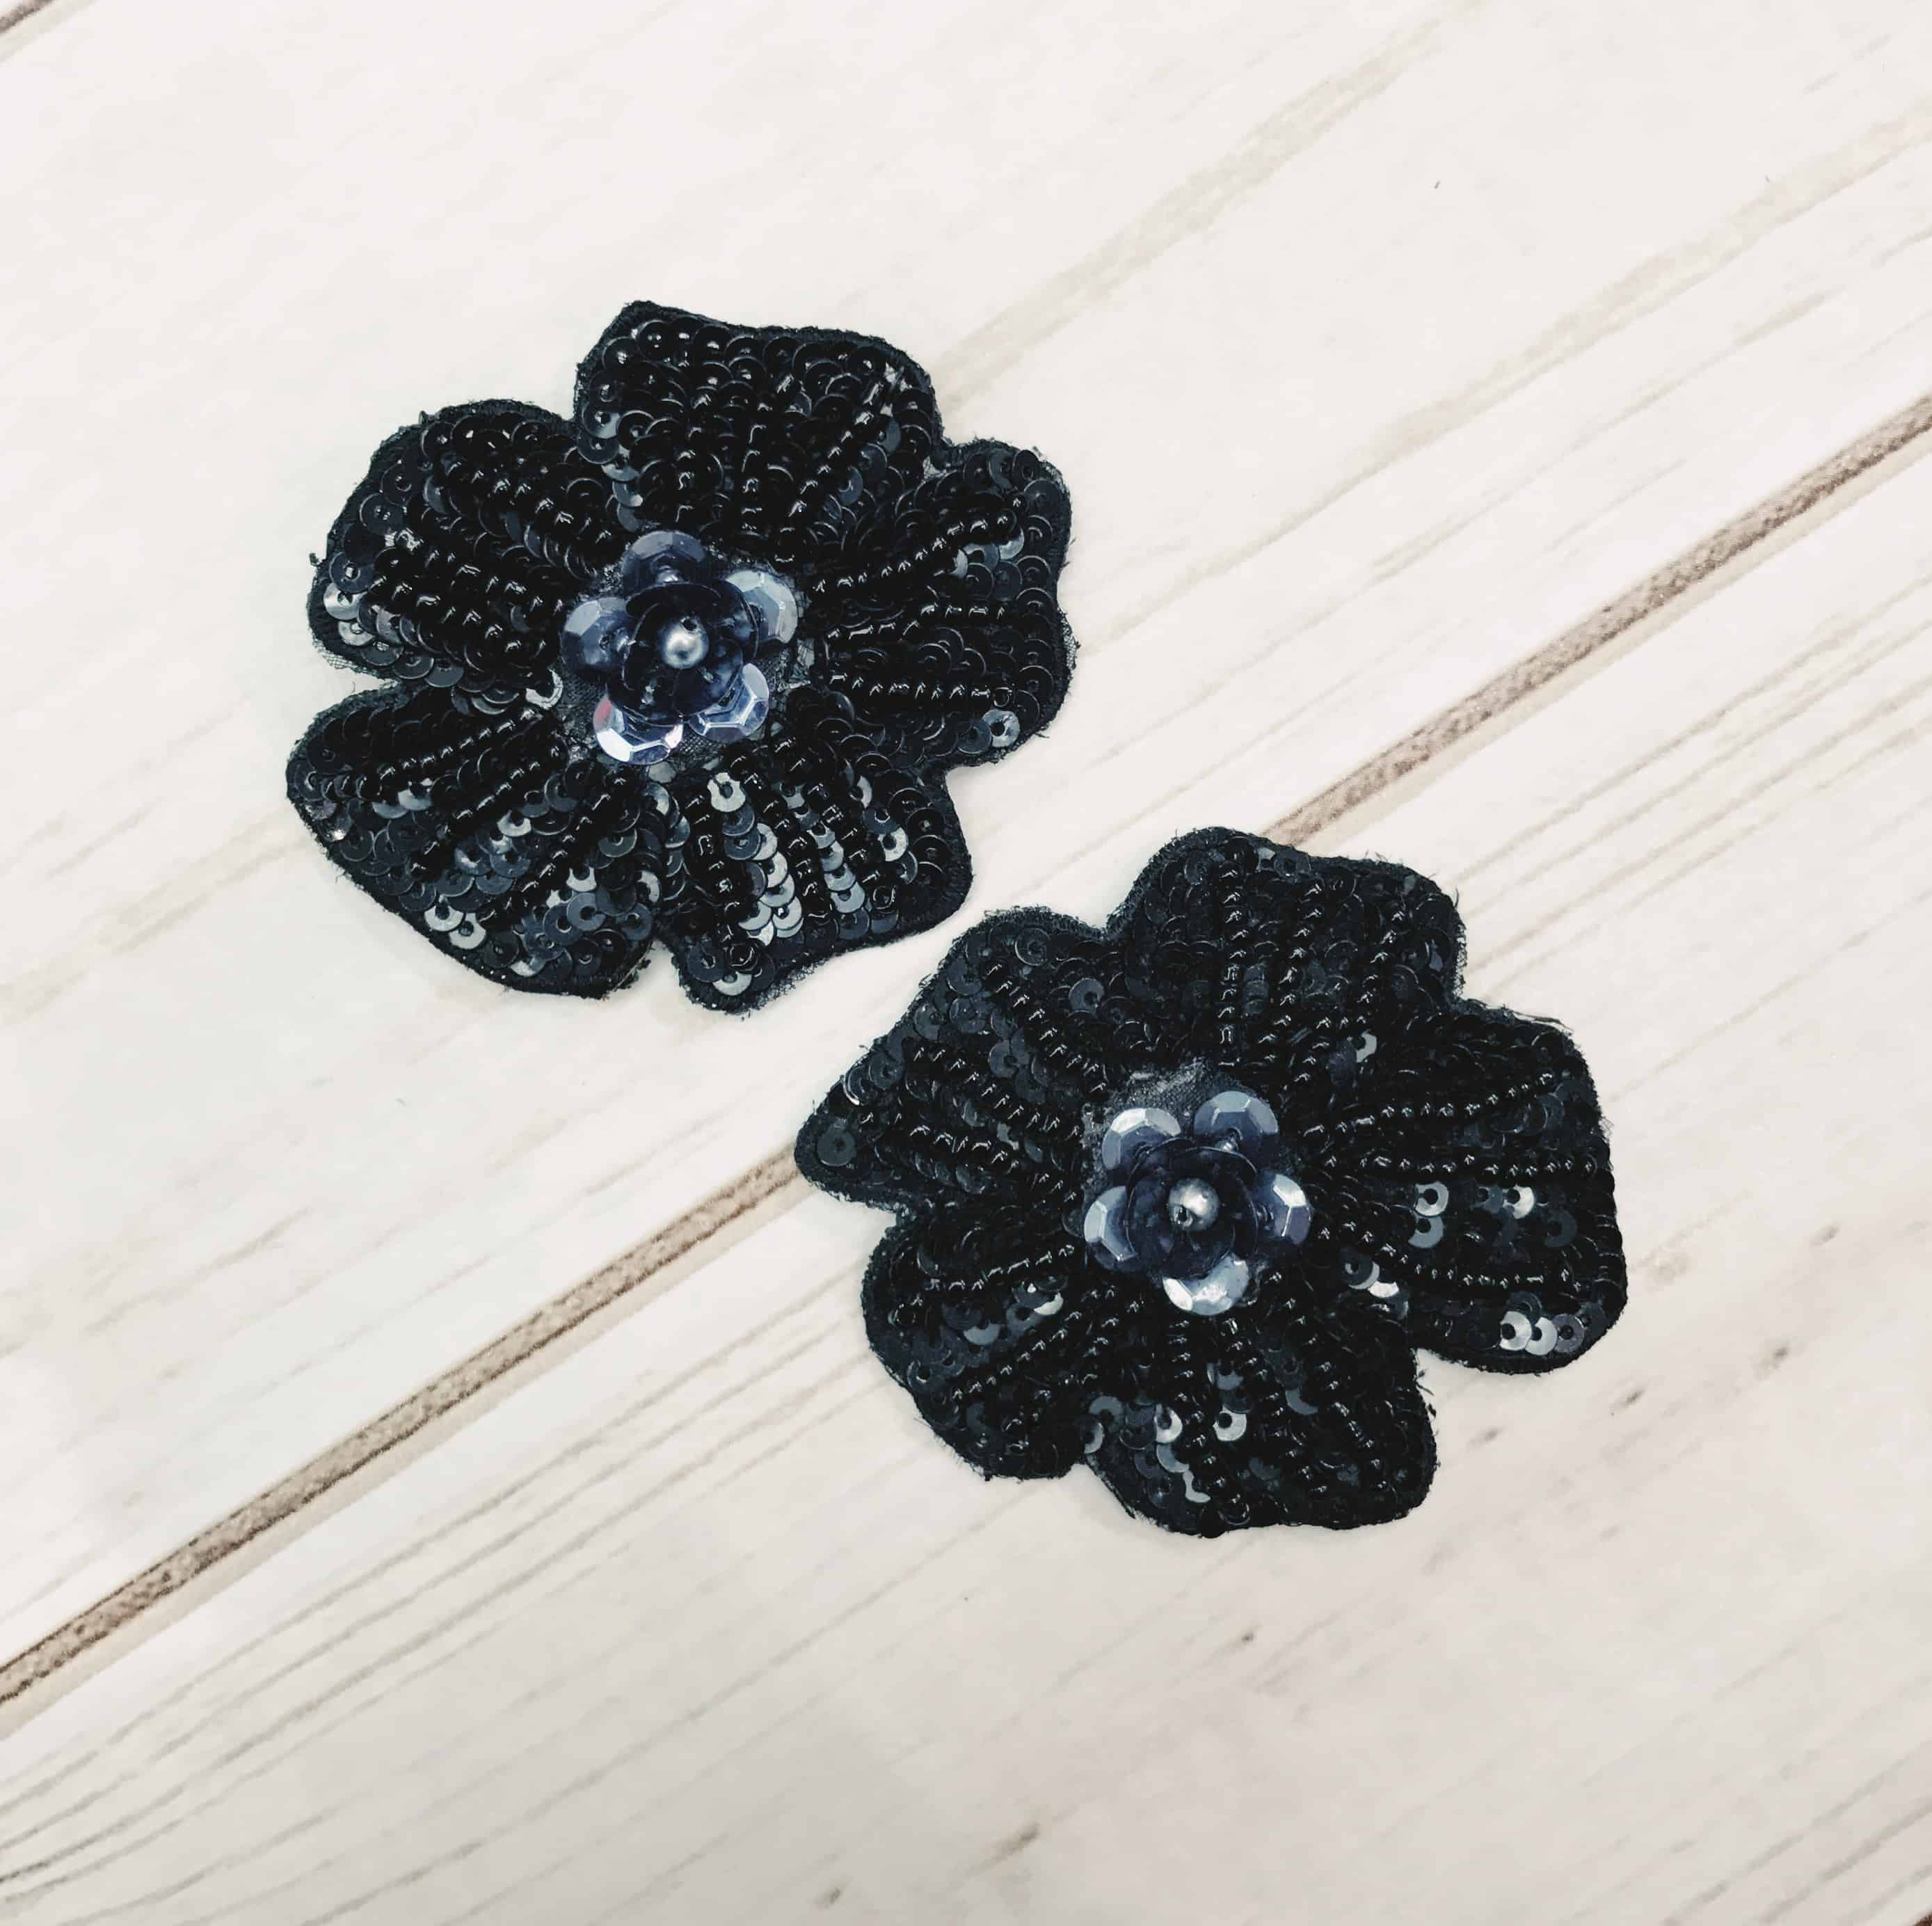 Black and Gray Small Flower Sequin Appliques (Sold as Set of 2)